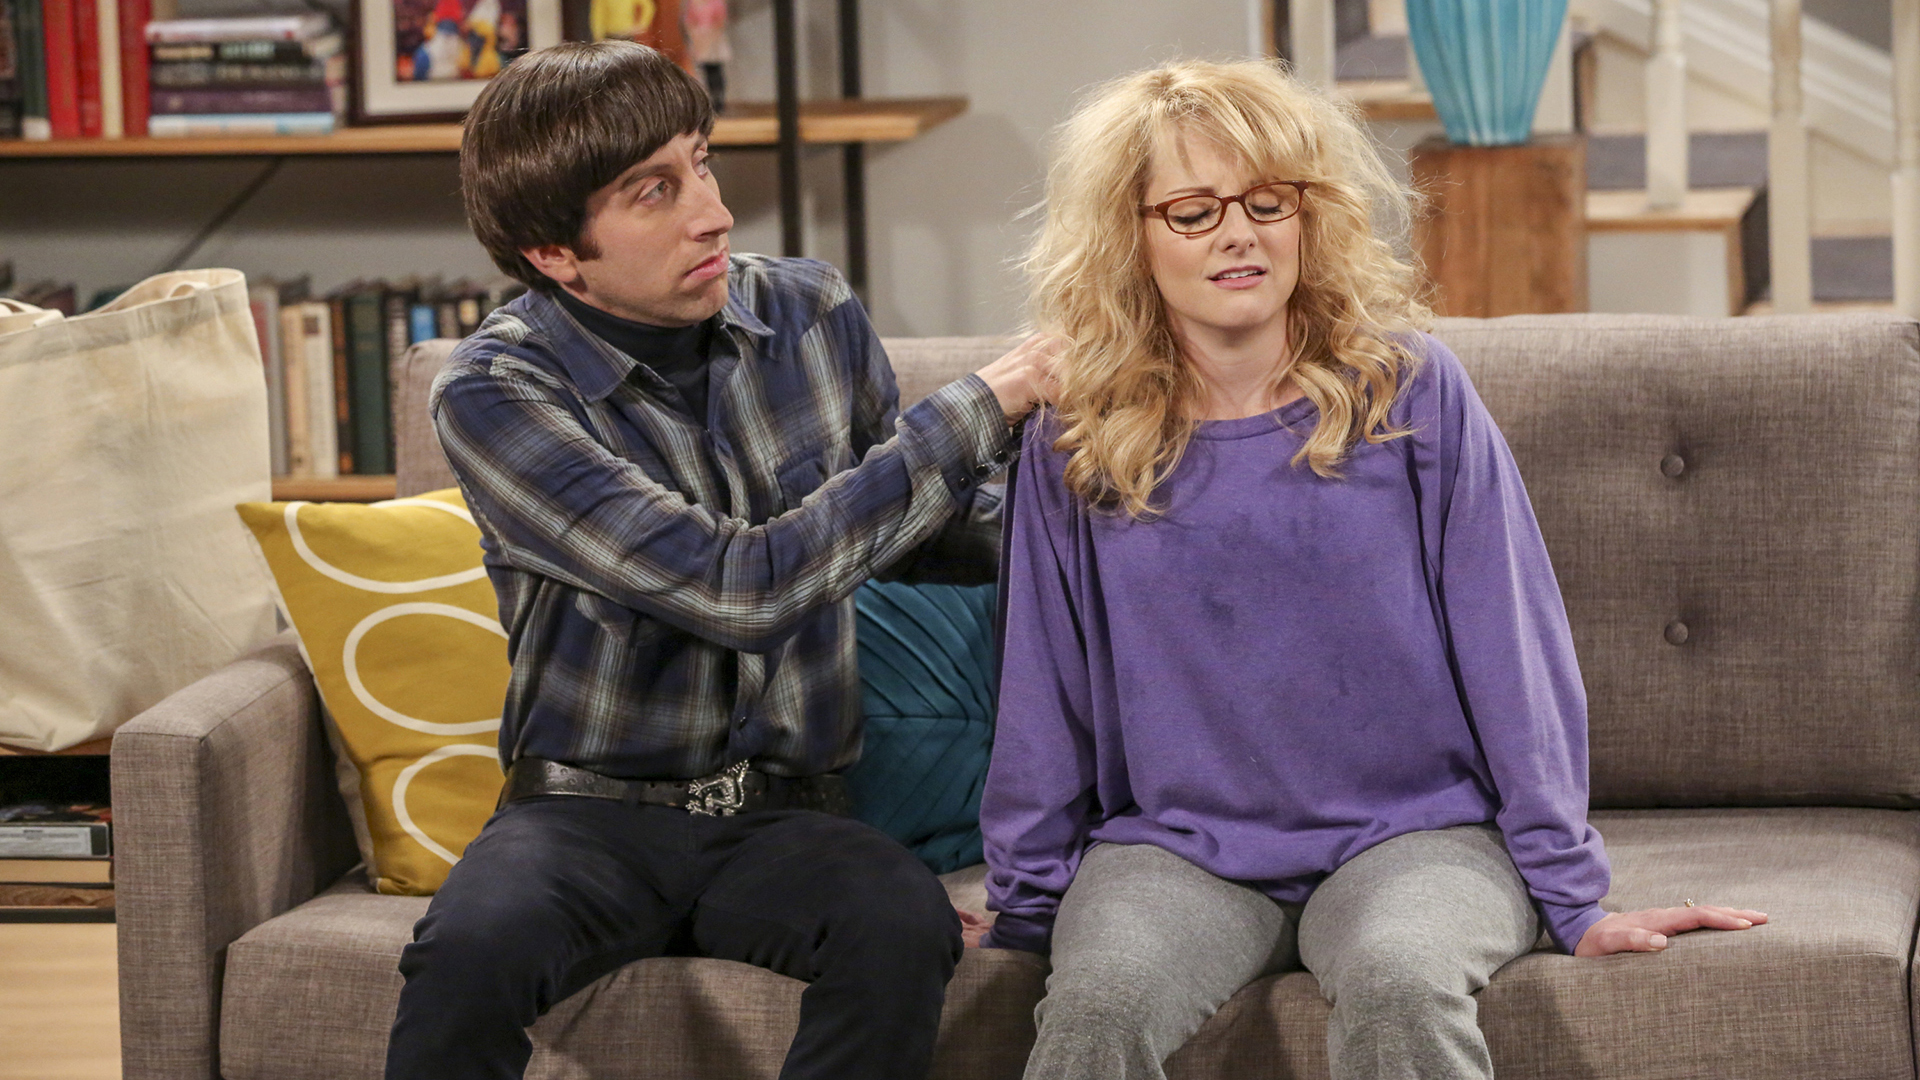 Howard tries to get Bernadette to relax after a long night nursing.